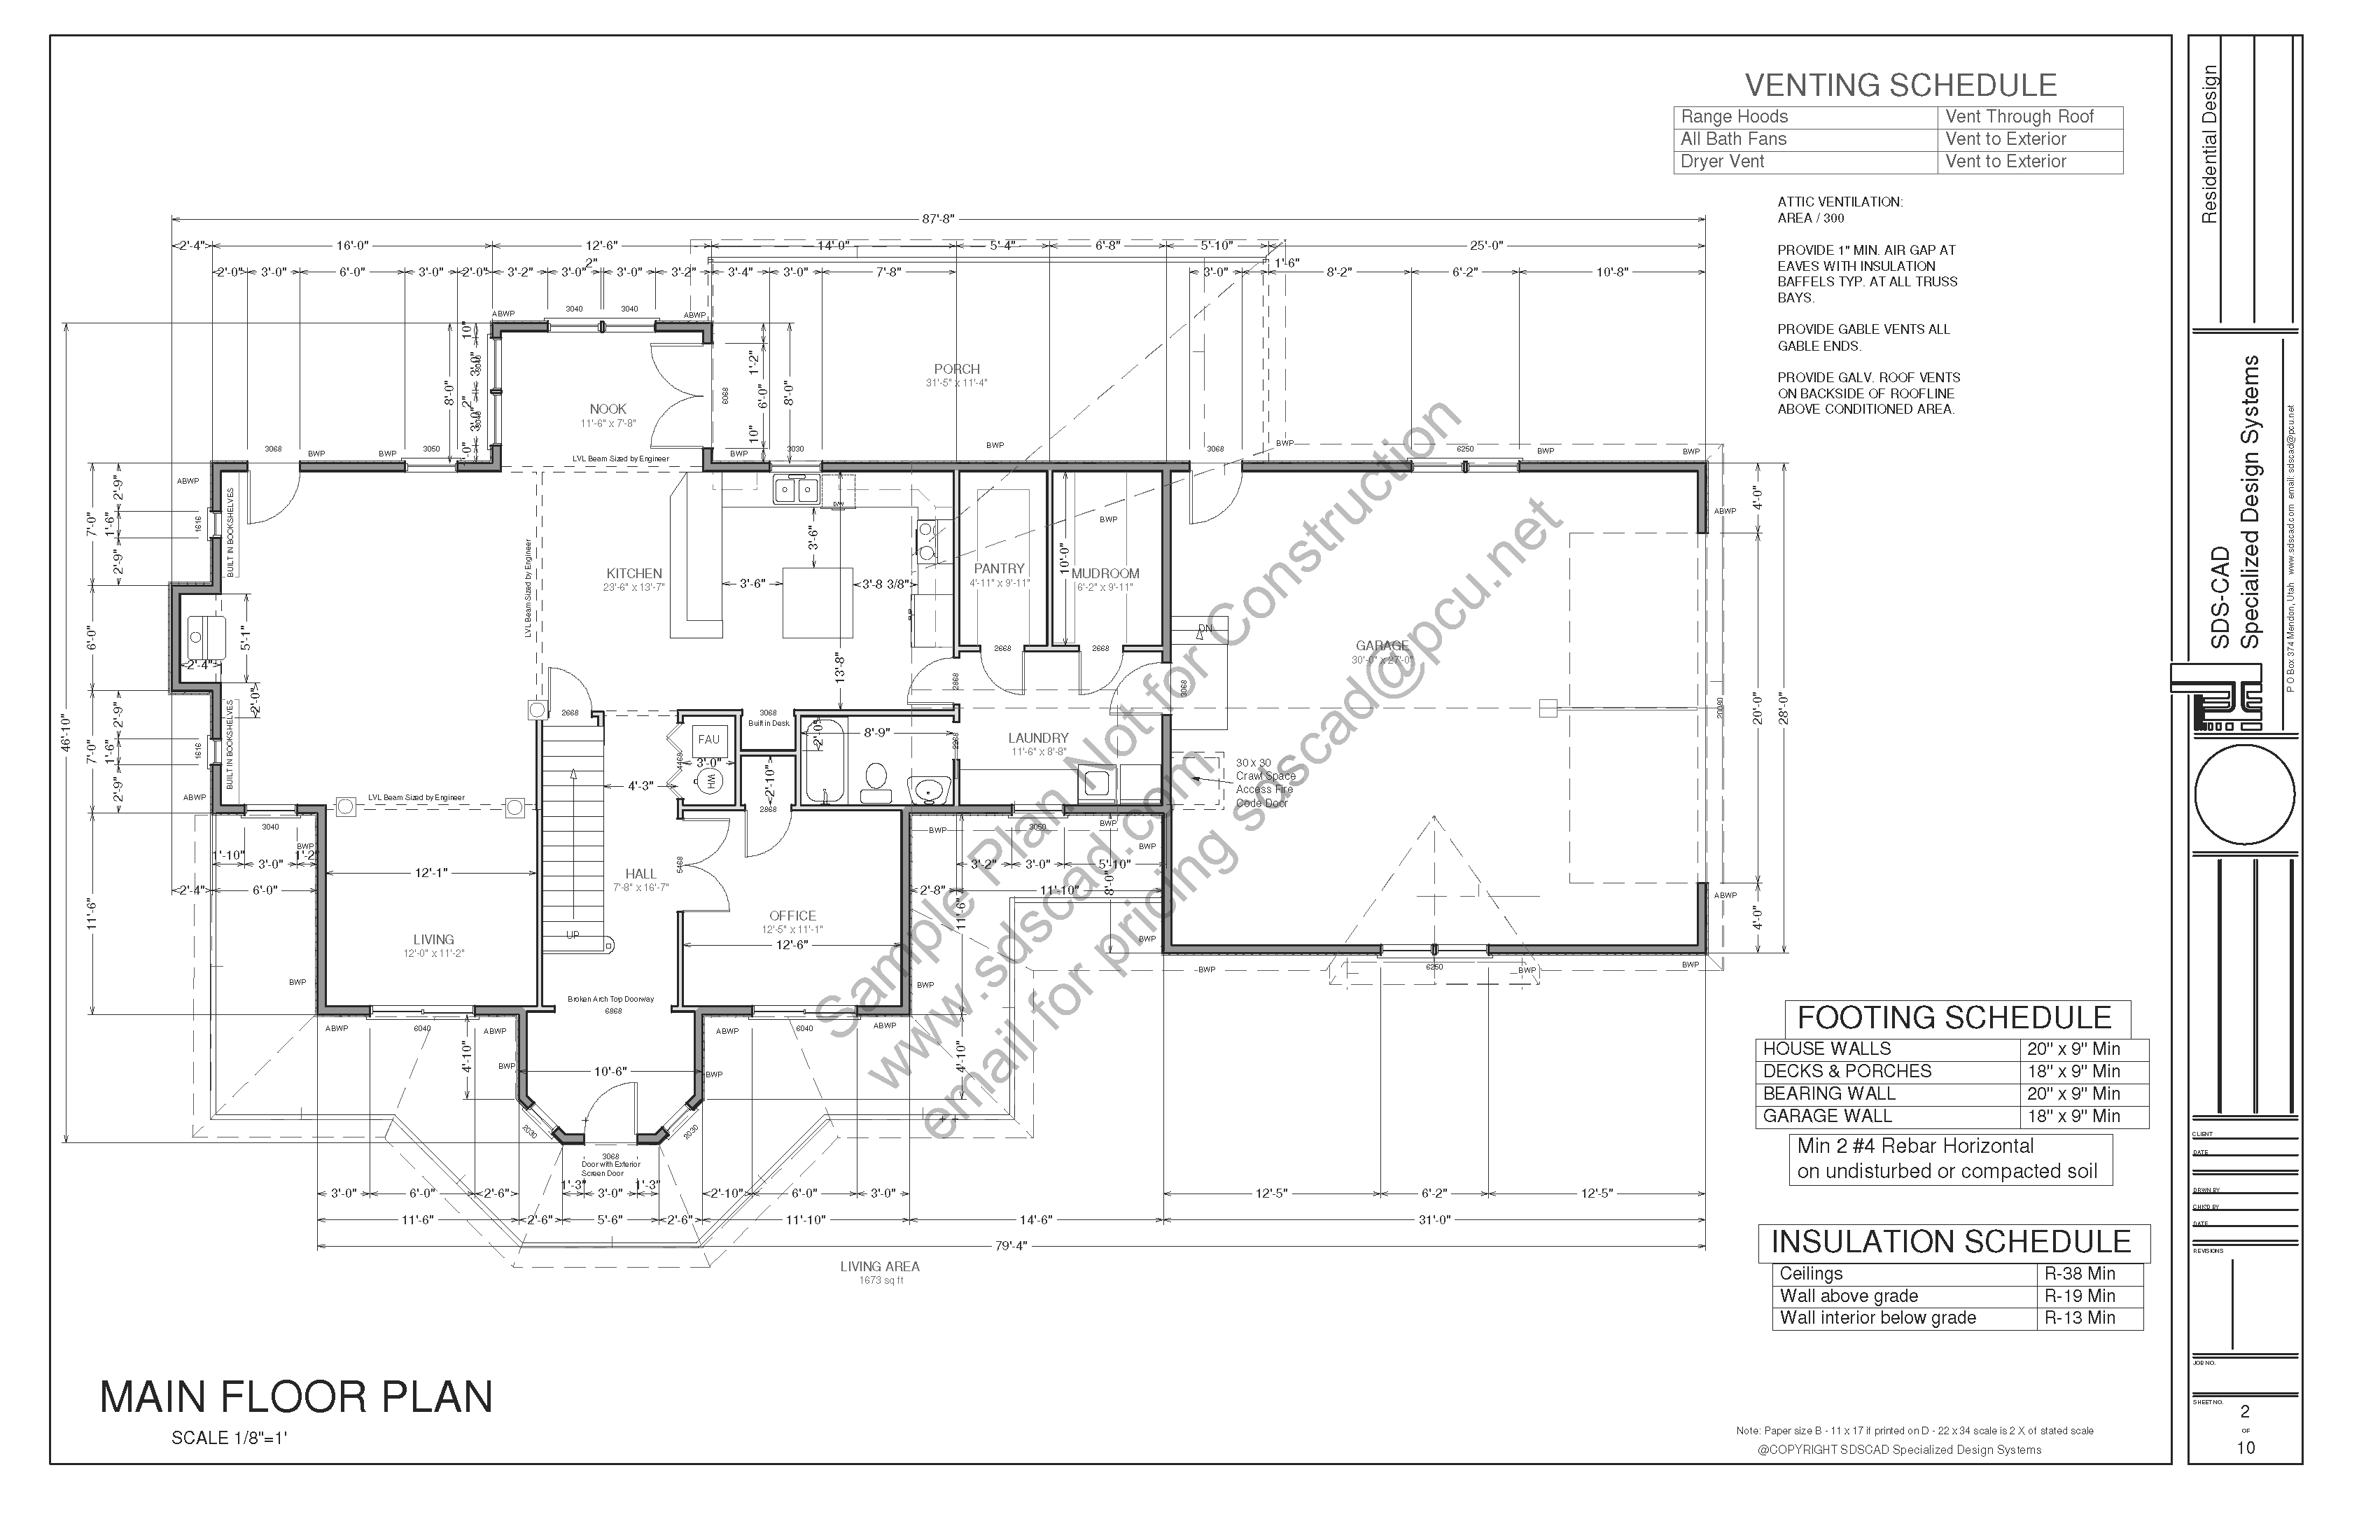 House Plans Blueprints Construction Documents Sds